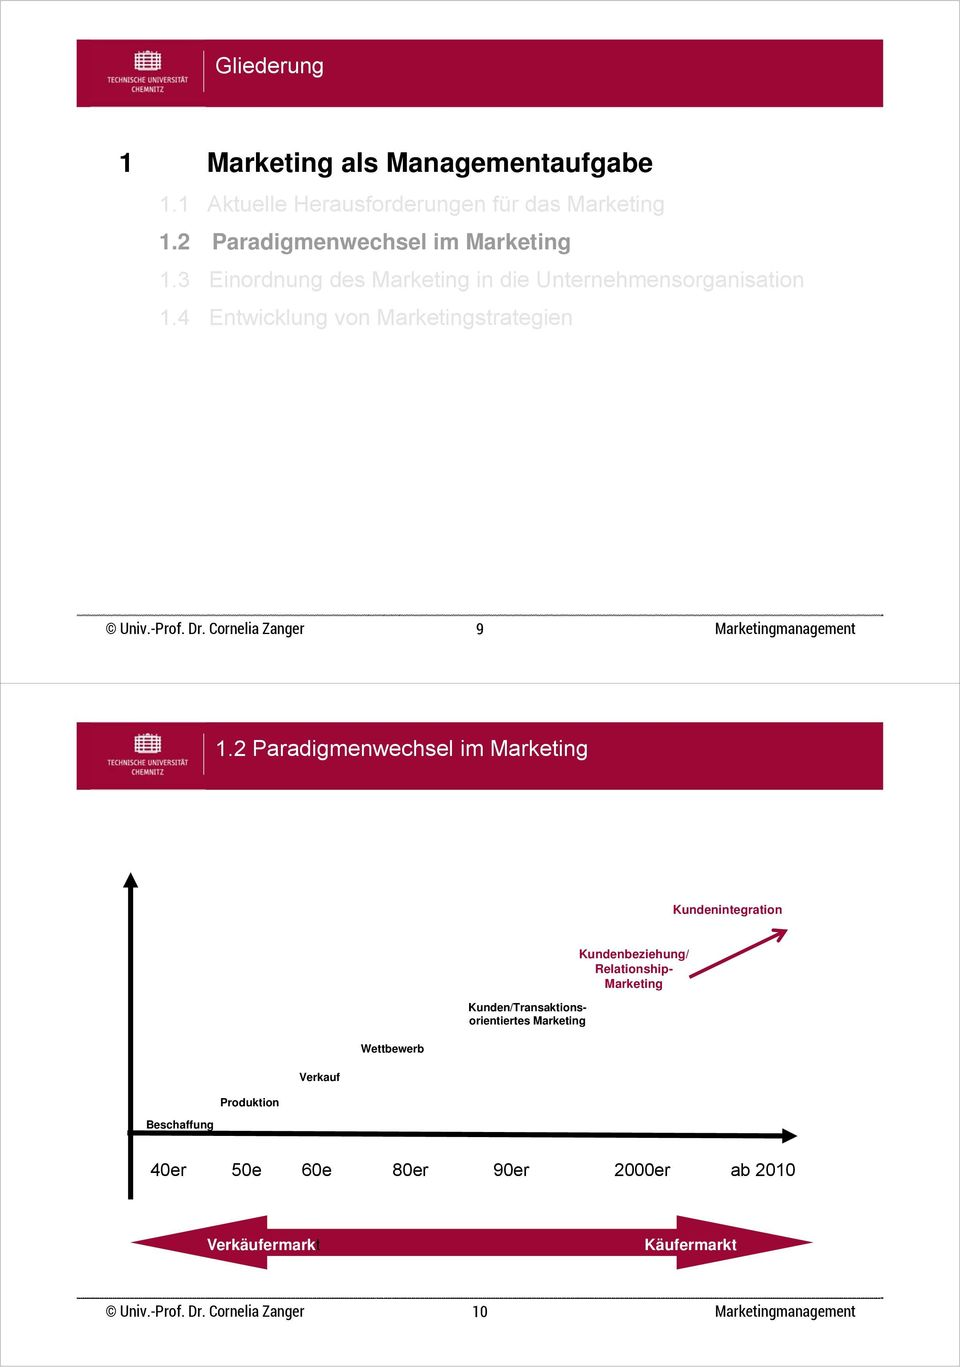 2 Paradigmenwechsel im Marketing Kundenintegration Kunden/Transaktionsorientiertes Marketing